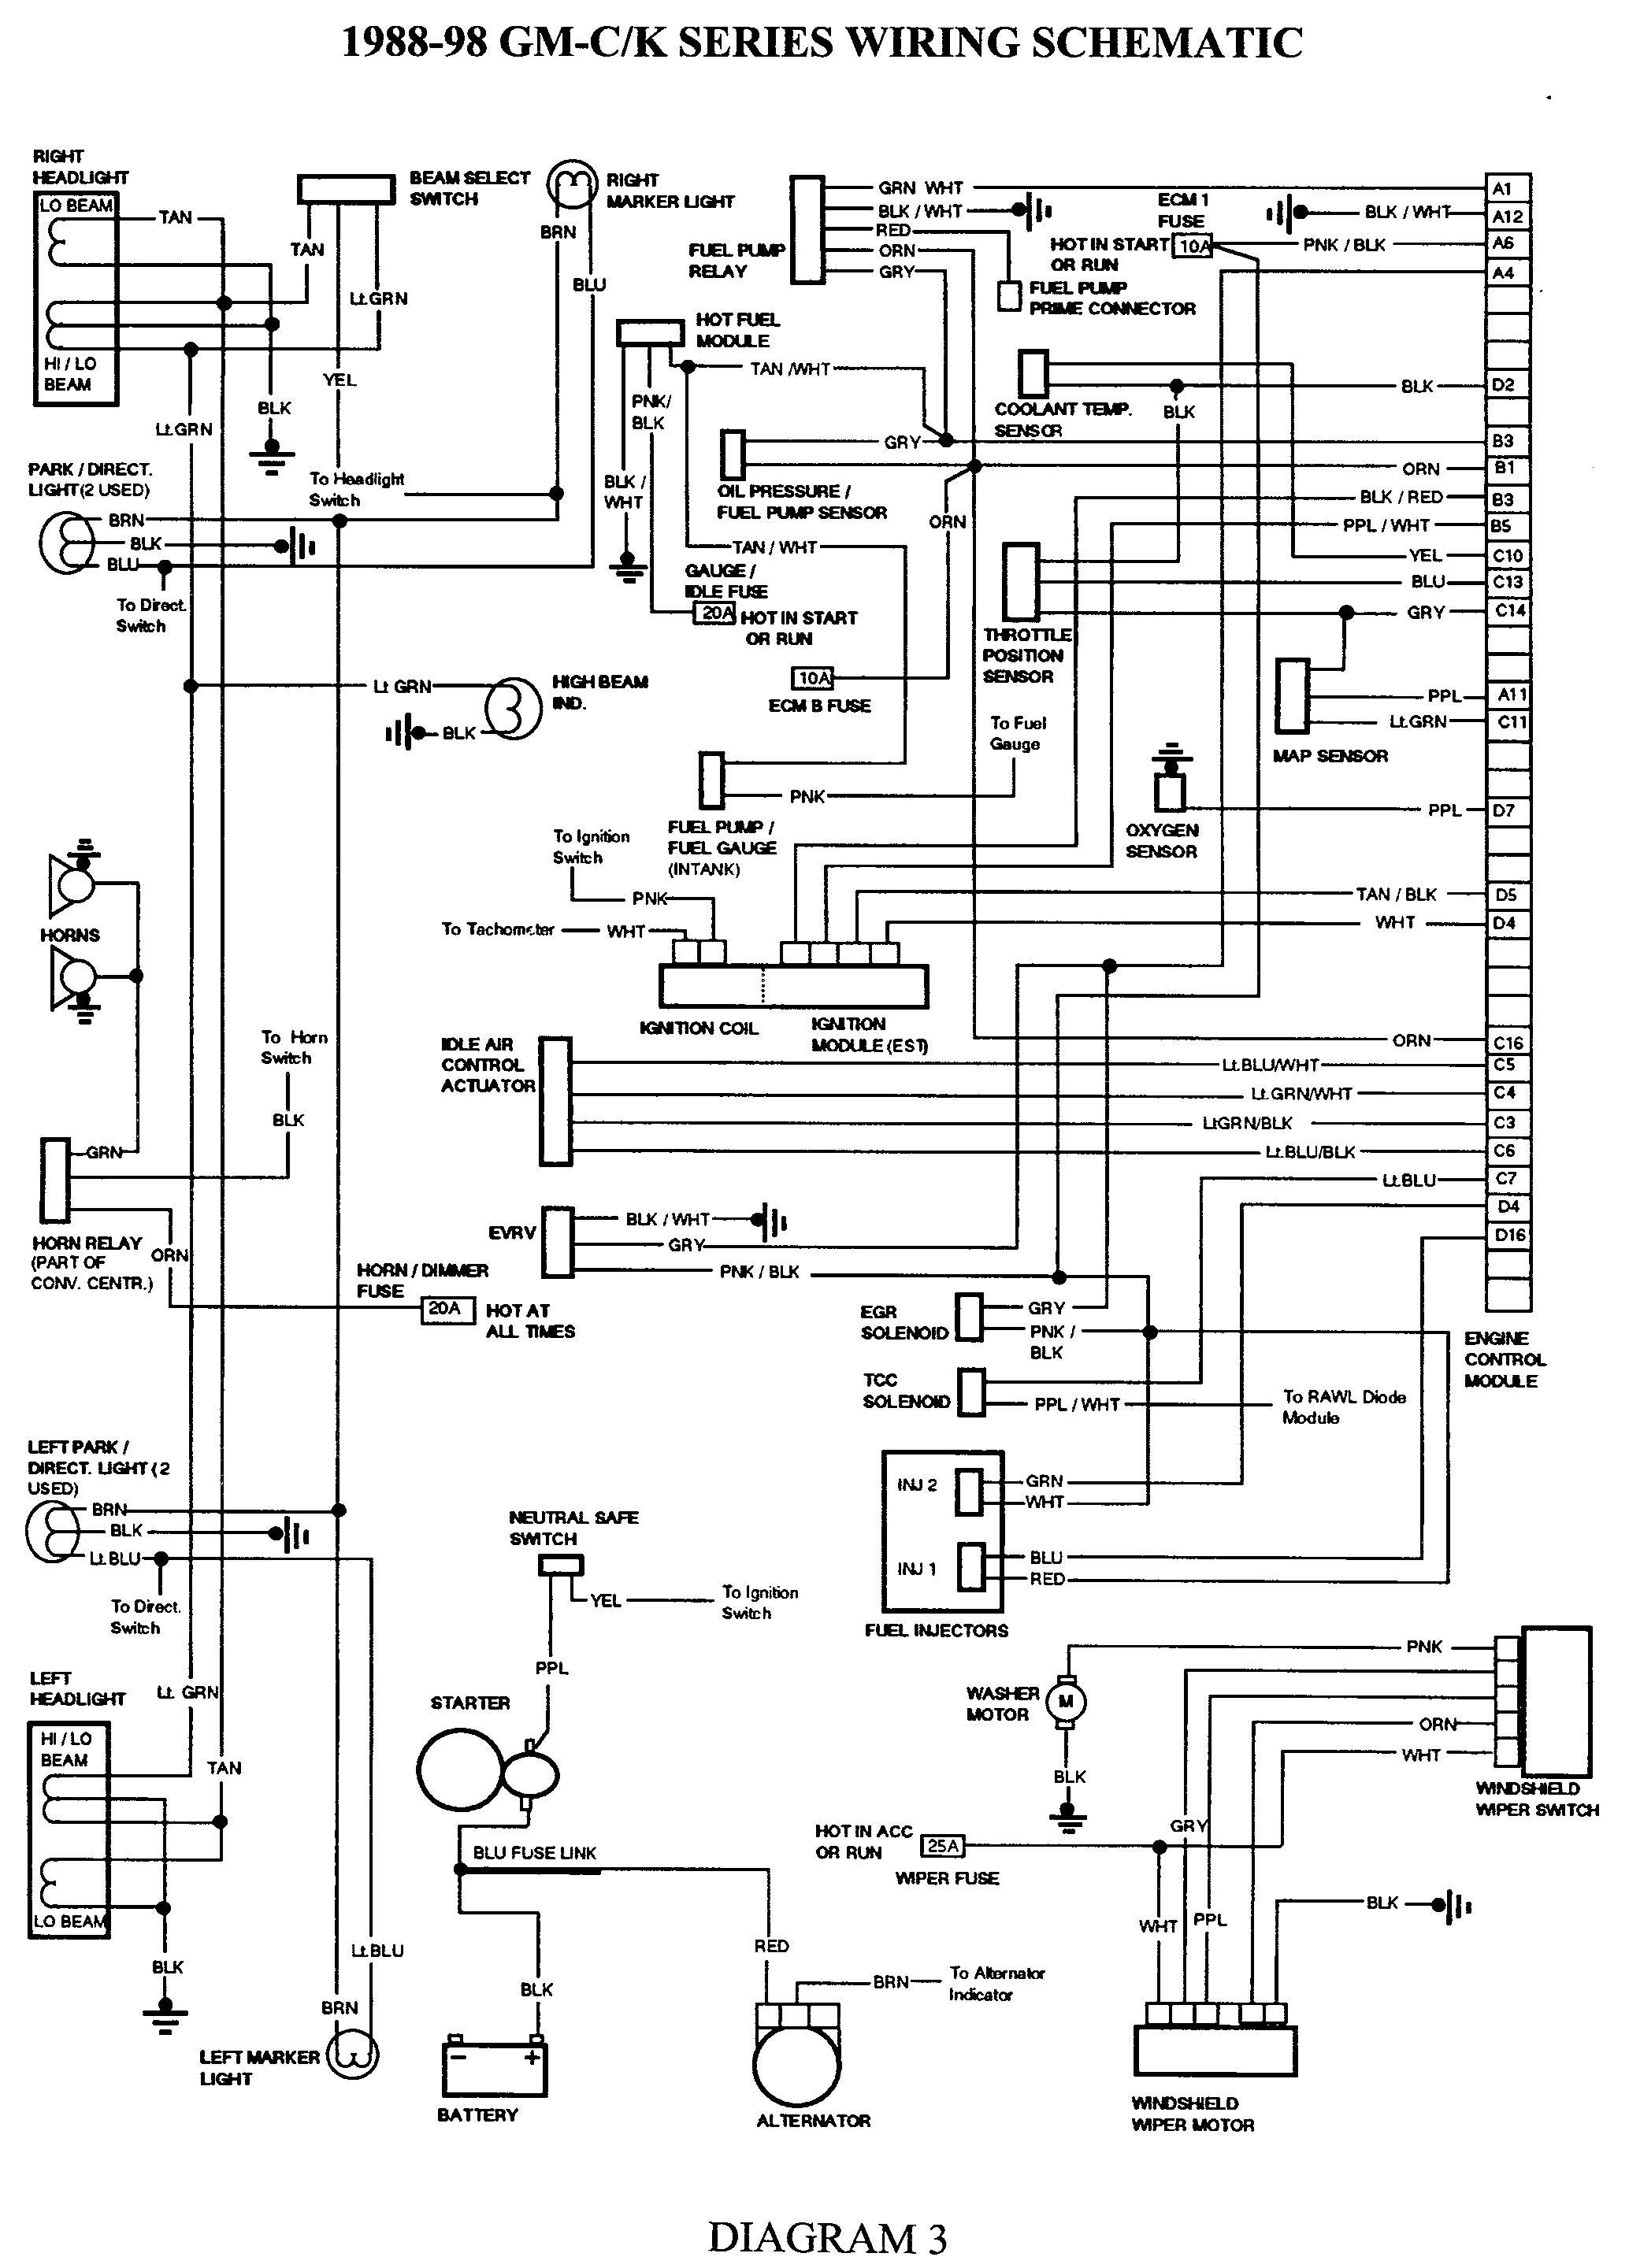 Truck Engine Diagram Porsche 944 Oil Flow Transaxles Wiring Of Related Post